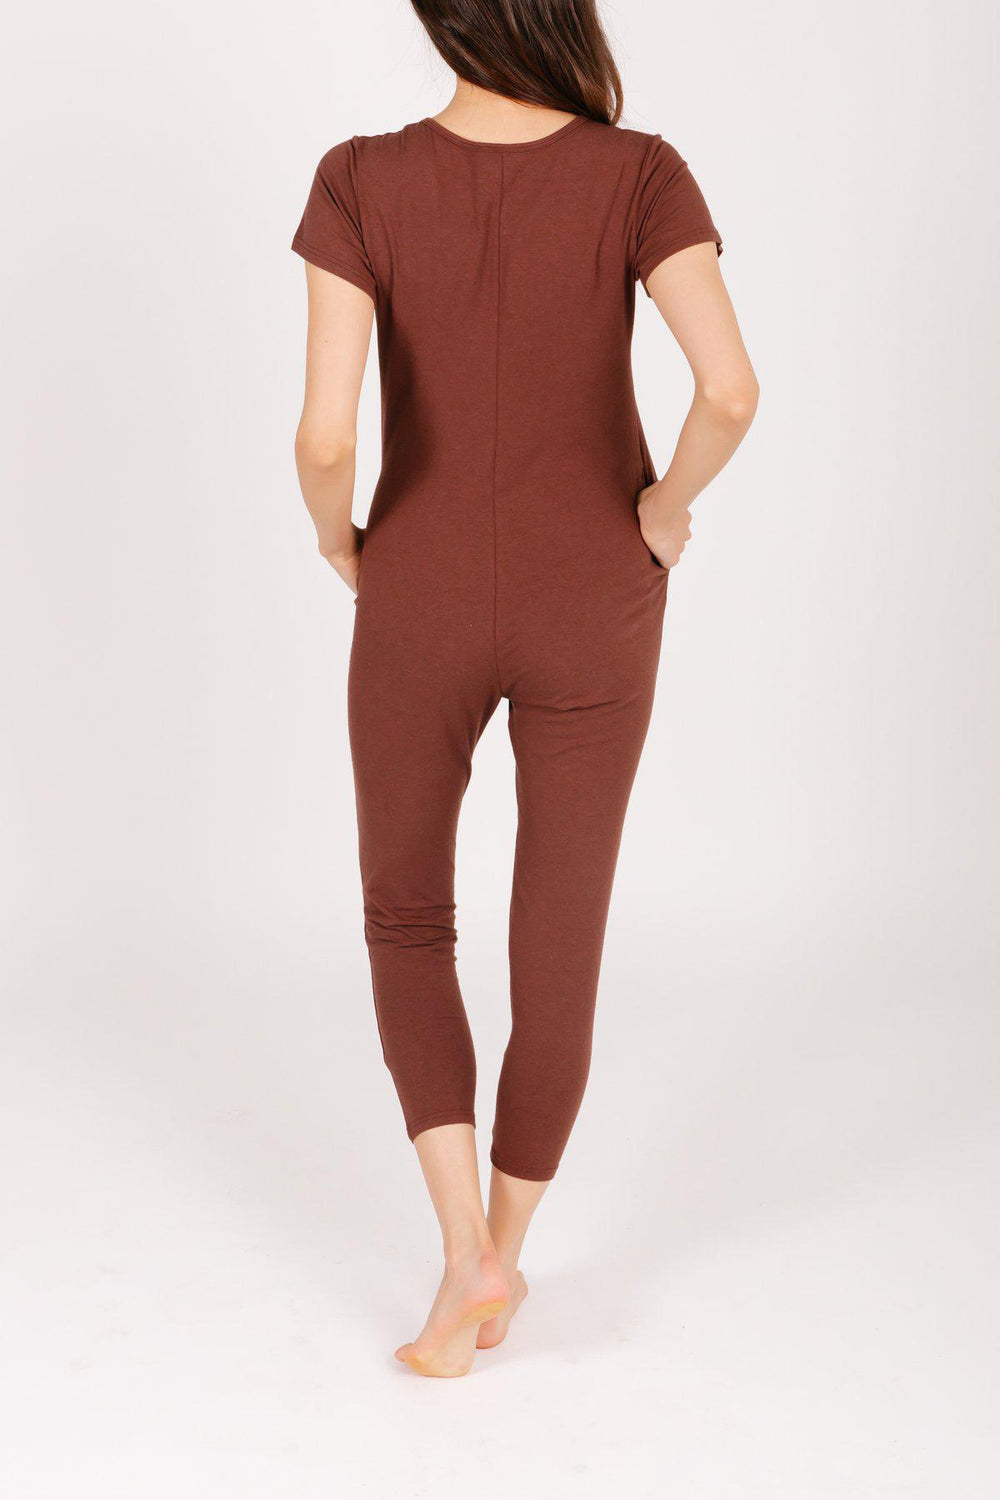 Smash+Tess Sunday Romper in Classic Cocoa-The Trendy Walrus